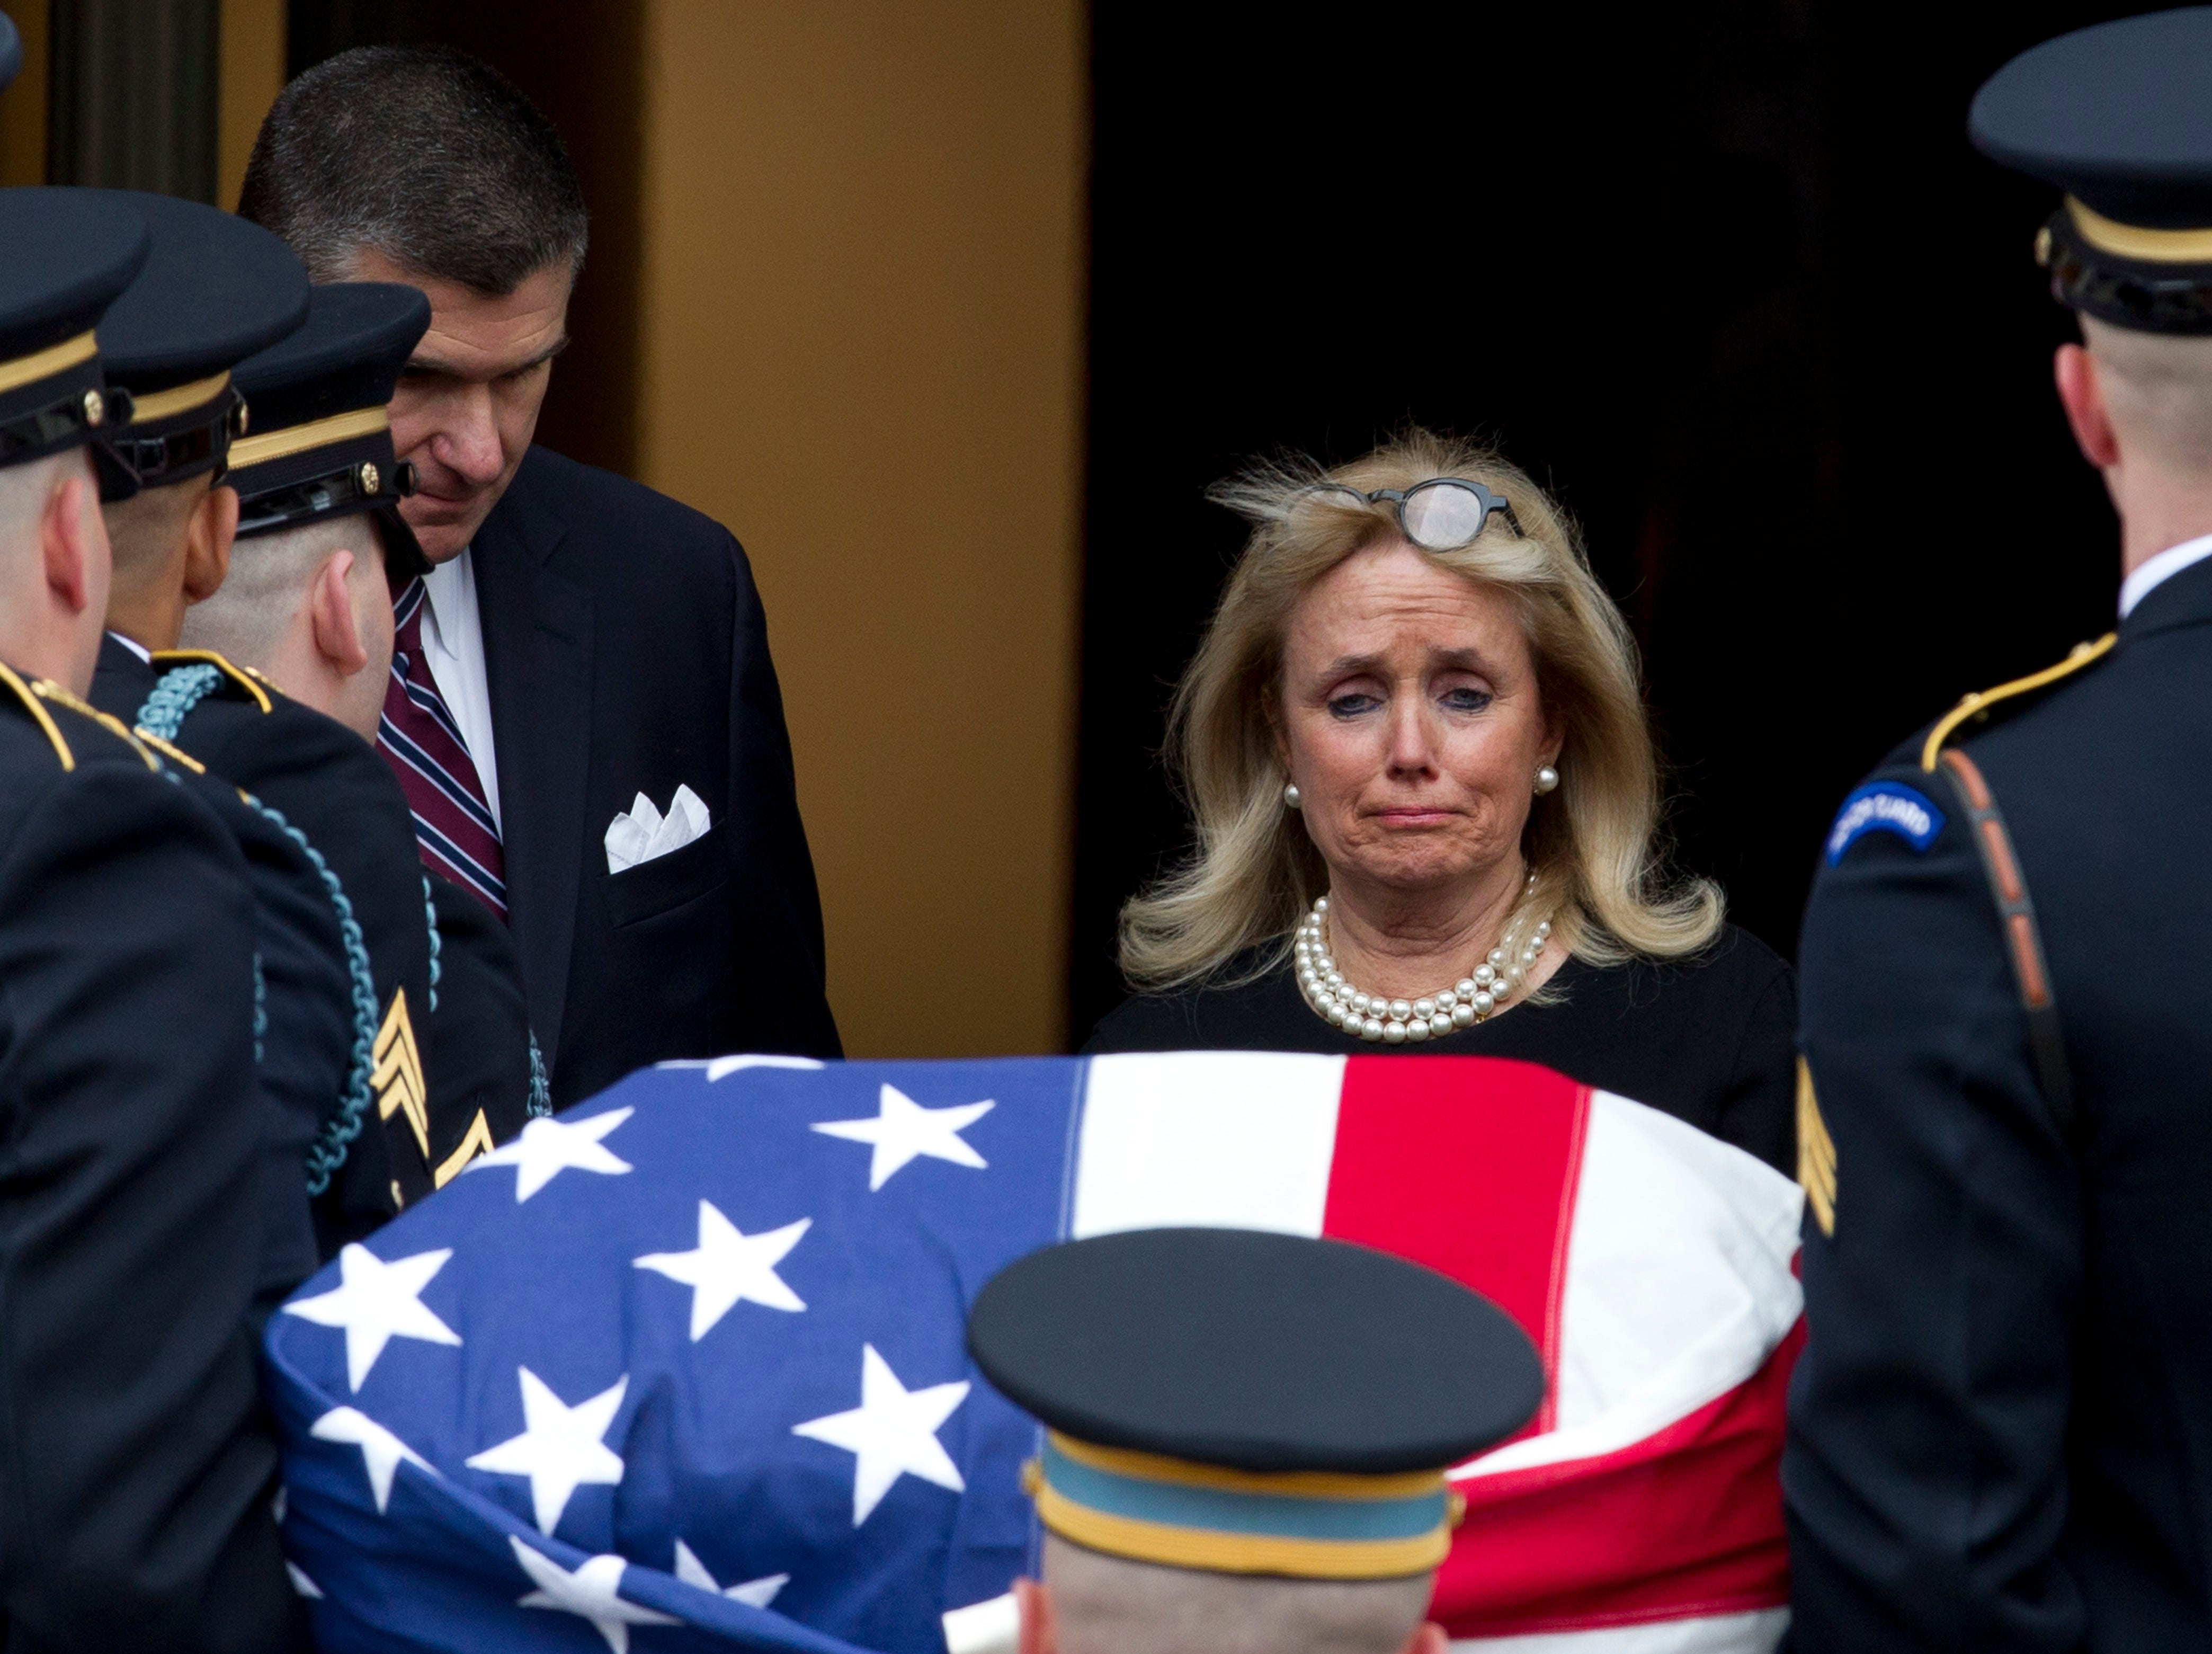 Rep. Debbie Dingell, D-Dearborn, watches the flag-draped casket of her husband,  former Rep. John Dingell, upon arrival at Holy Trinity Catholic Church for his funeral Thursday.